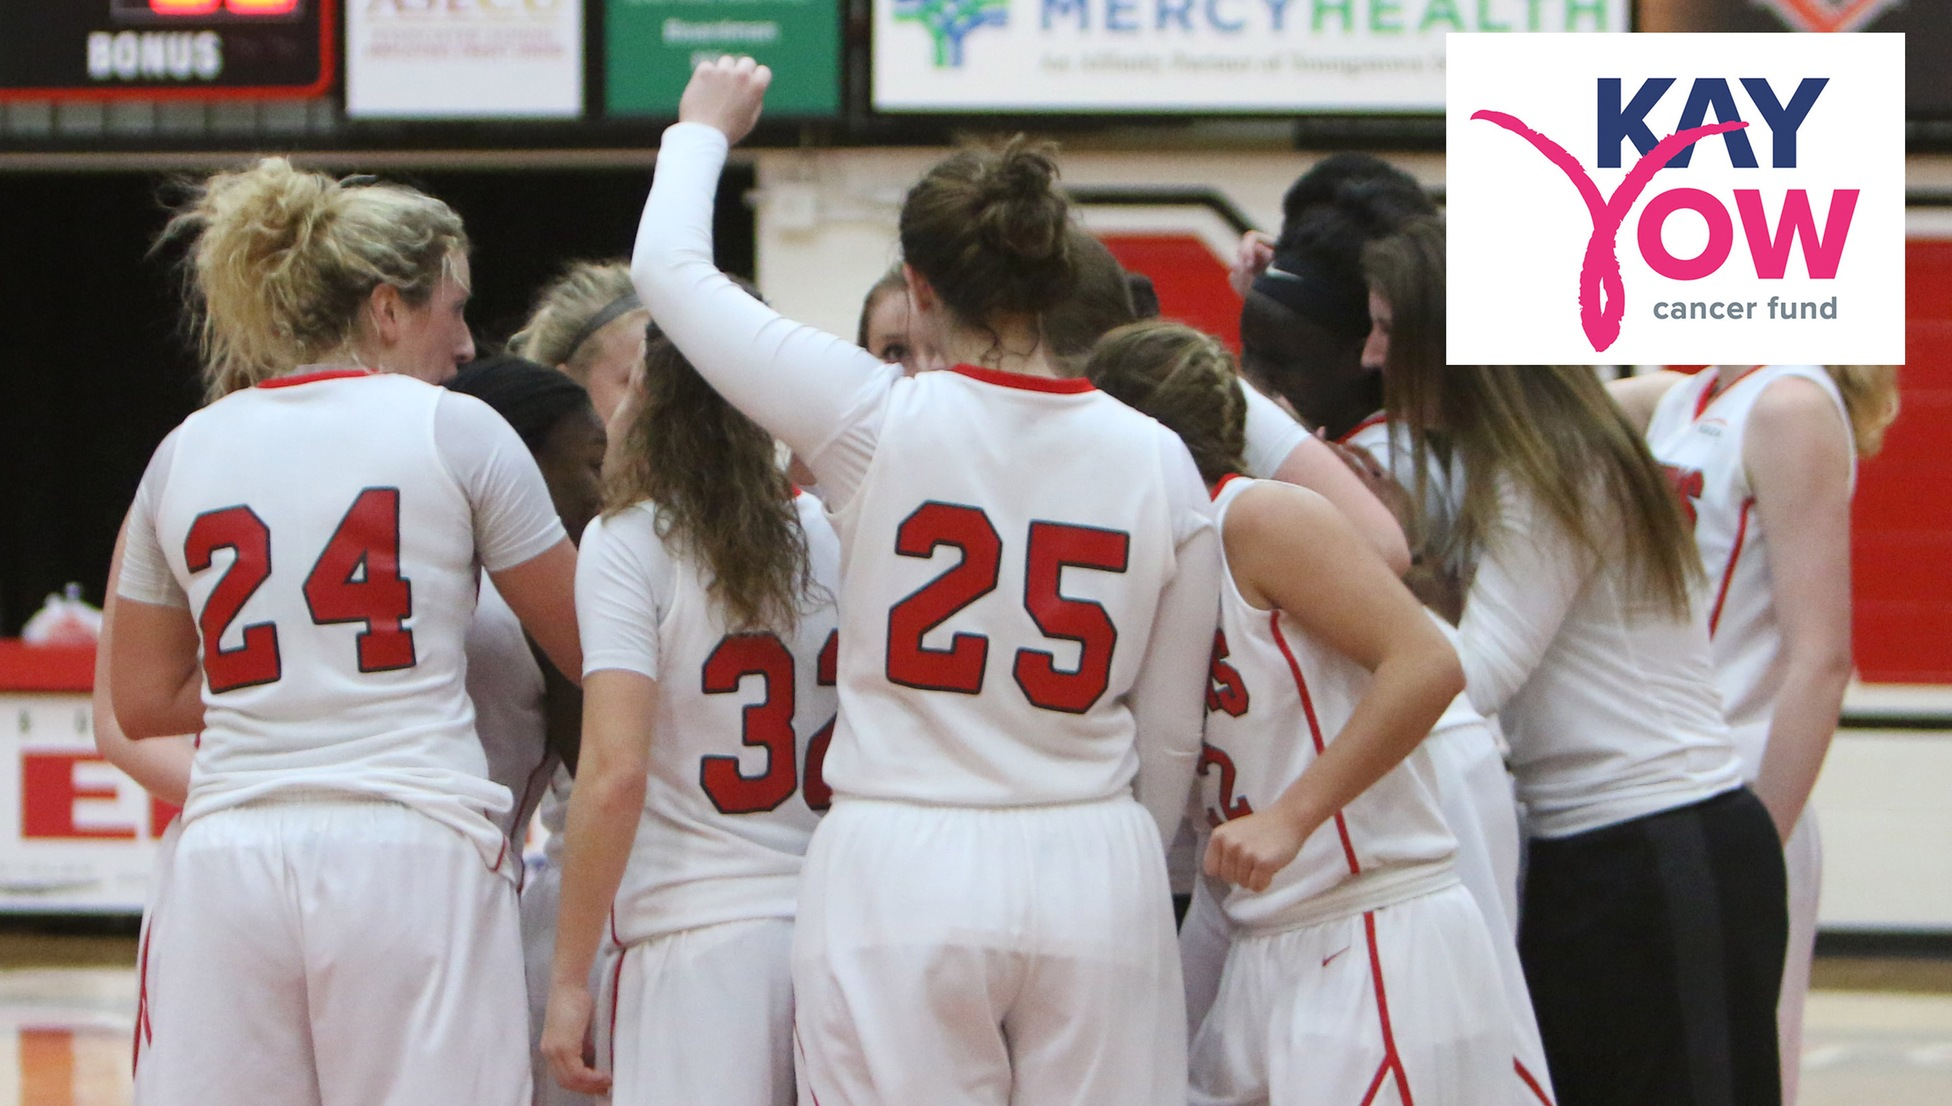 The YSU Women's Basketball will participate in the Play4Kay event on Feb. 18.